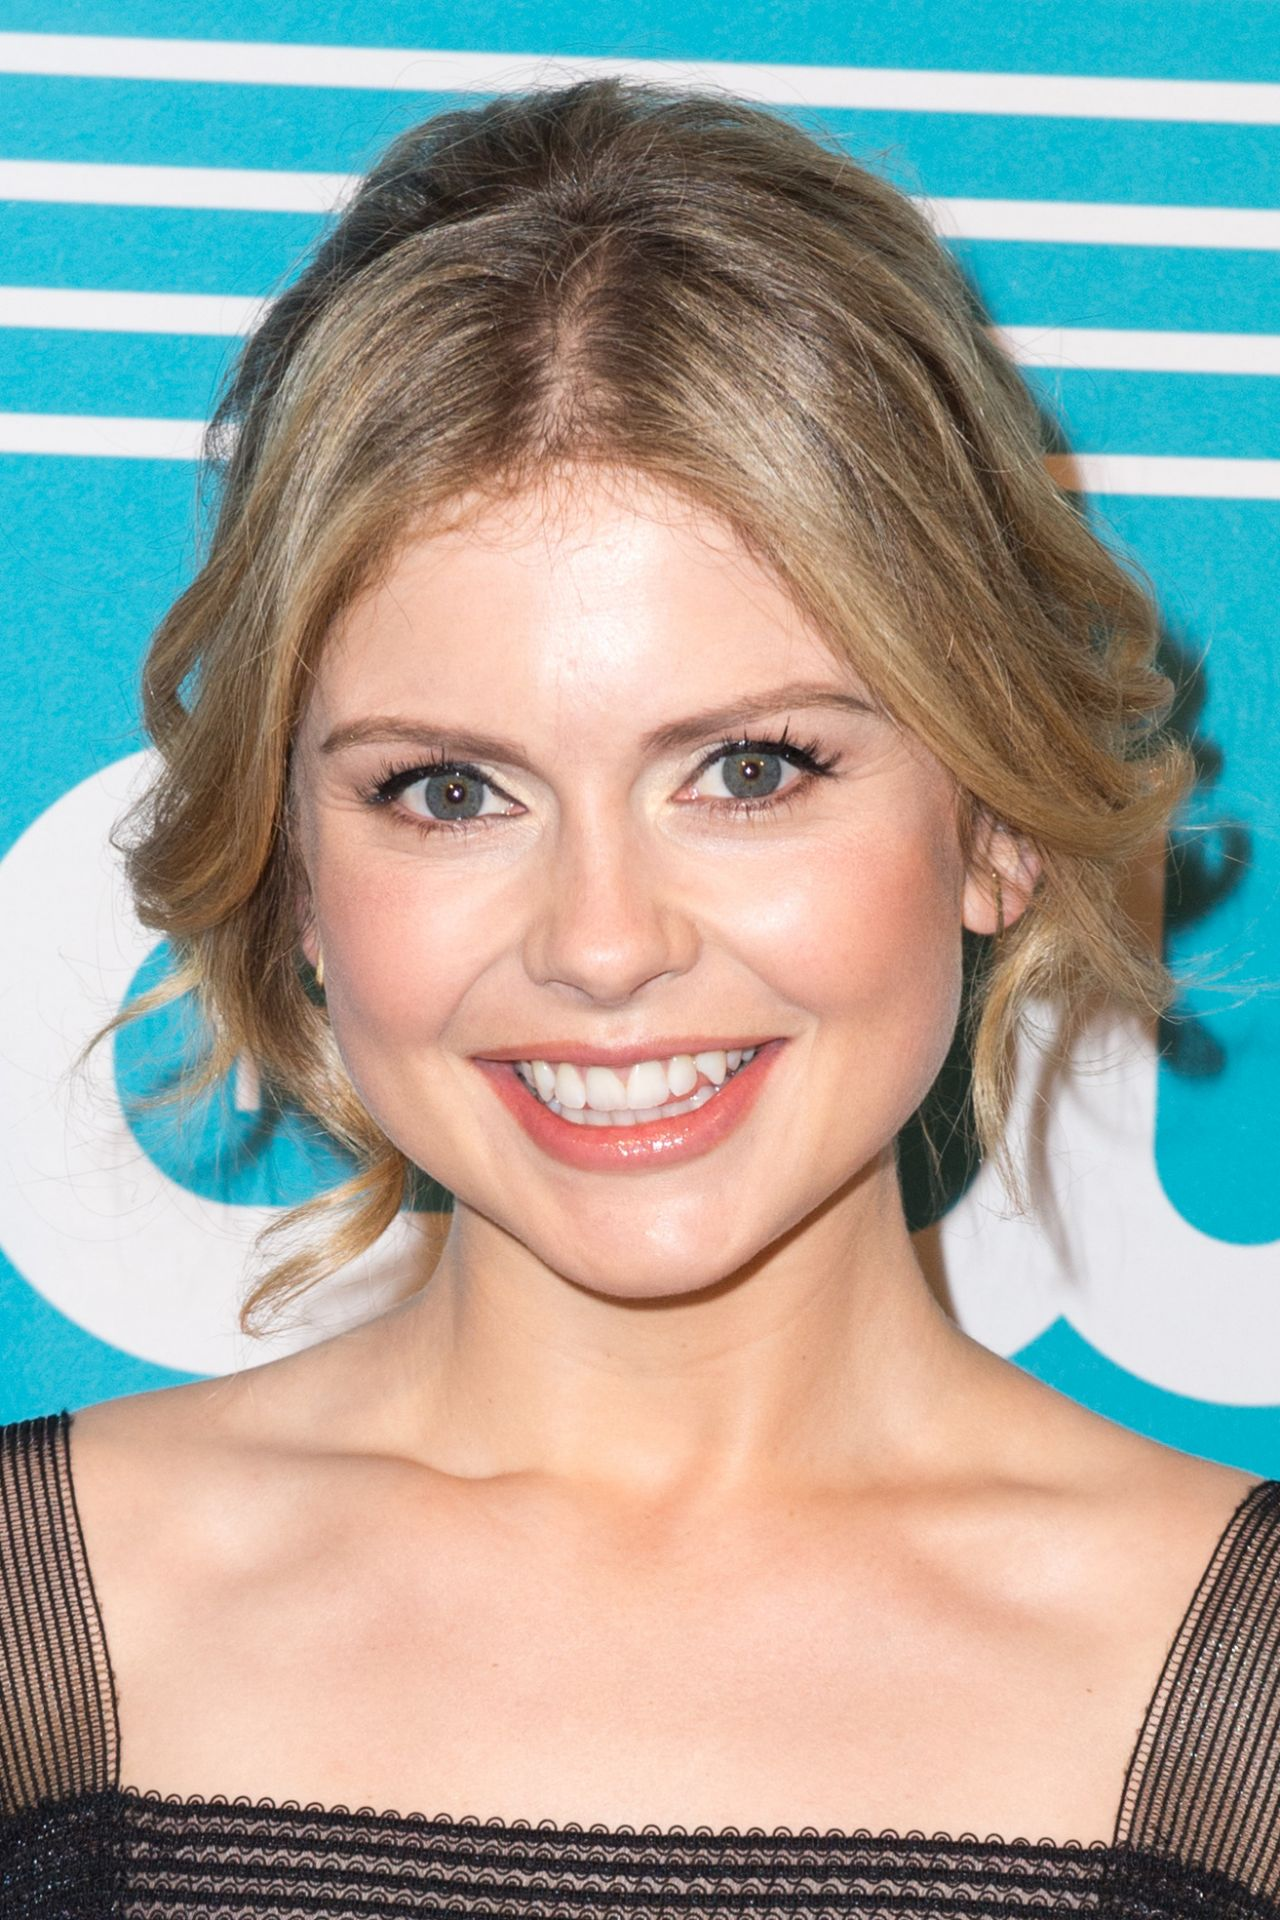 Rose Mciver At Arrivals For The Cw Upfronts 2016 The